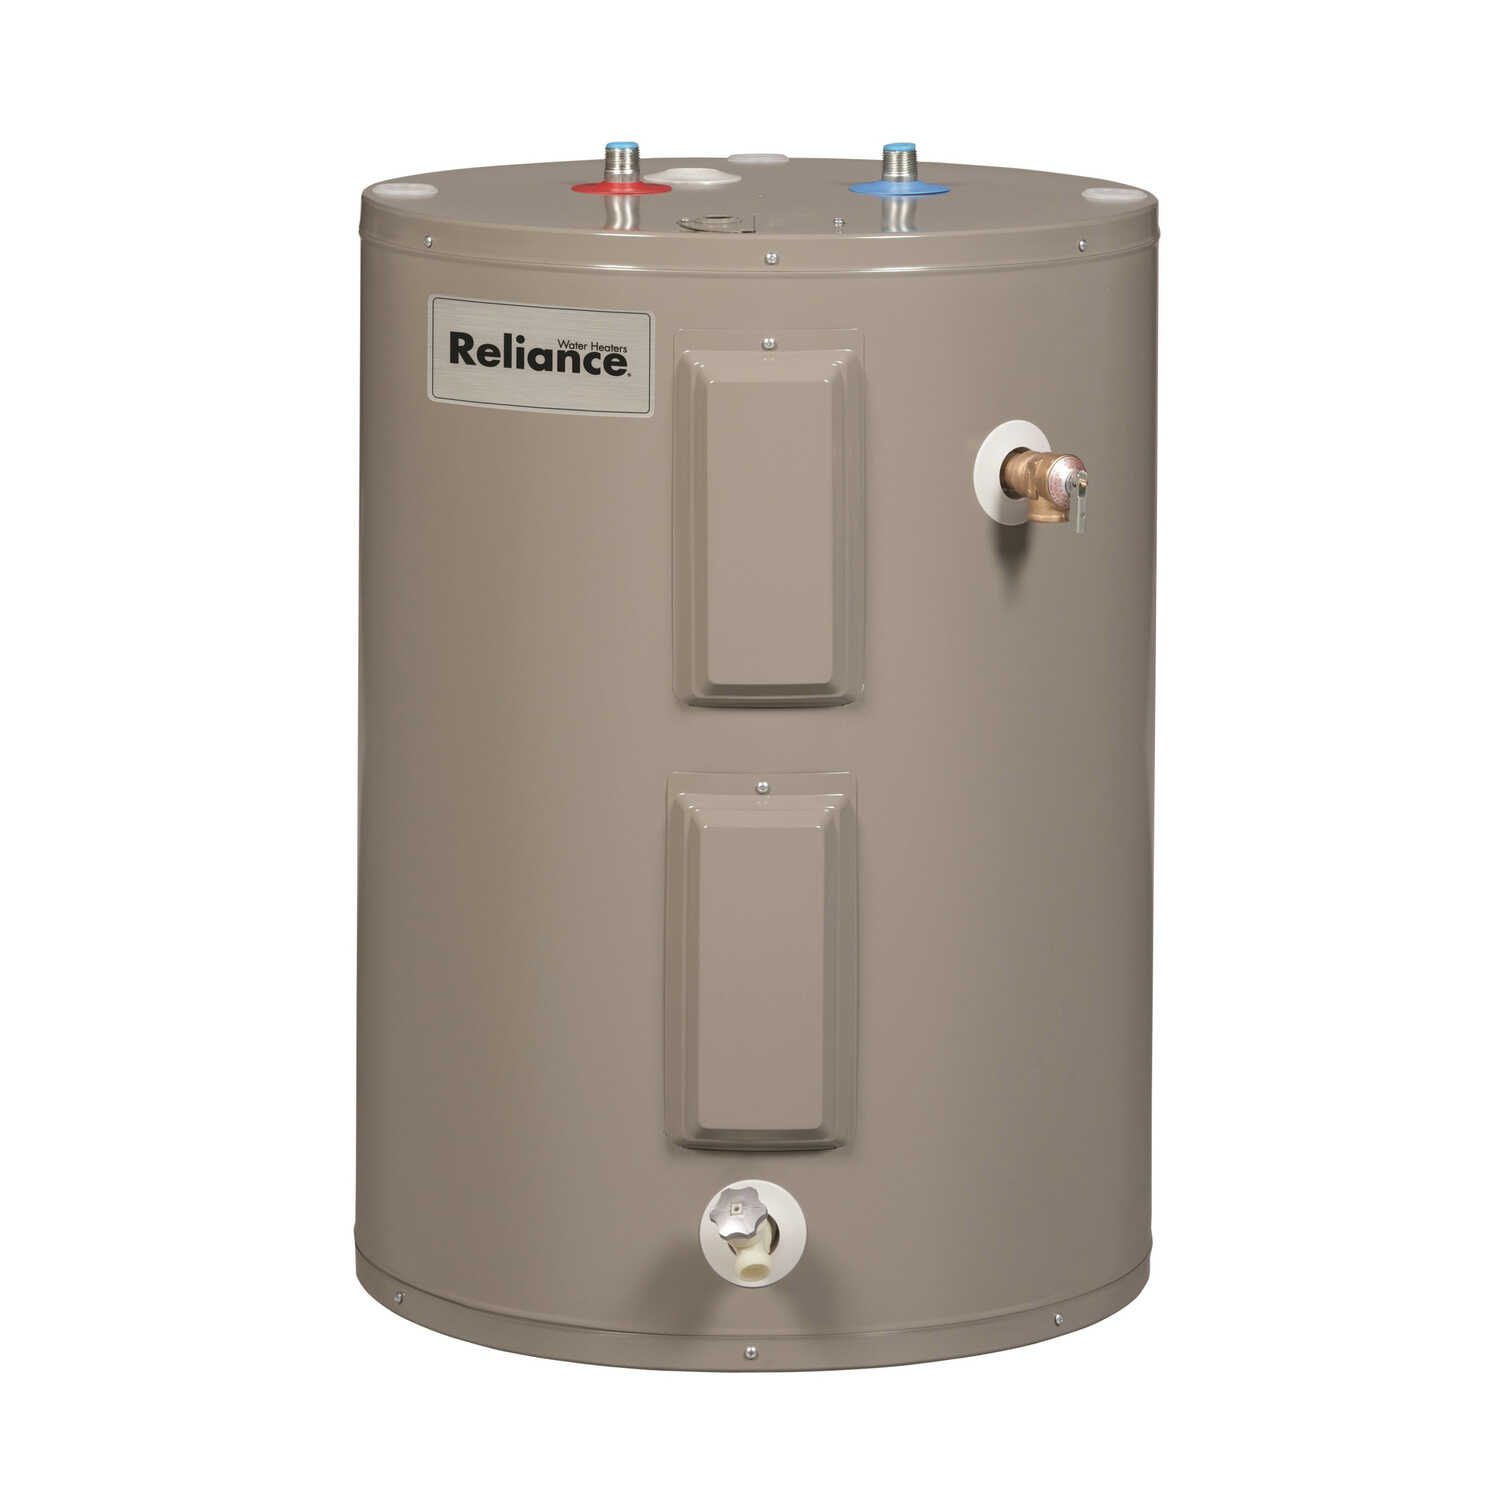 Reliance  Electric  Lowboy Water Heater  30 in. H x 20 in. W x 20 in. L 28 gal.